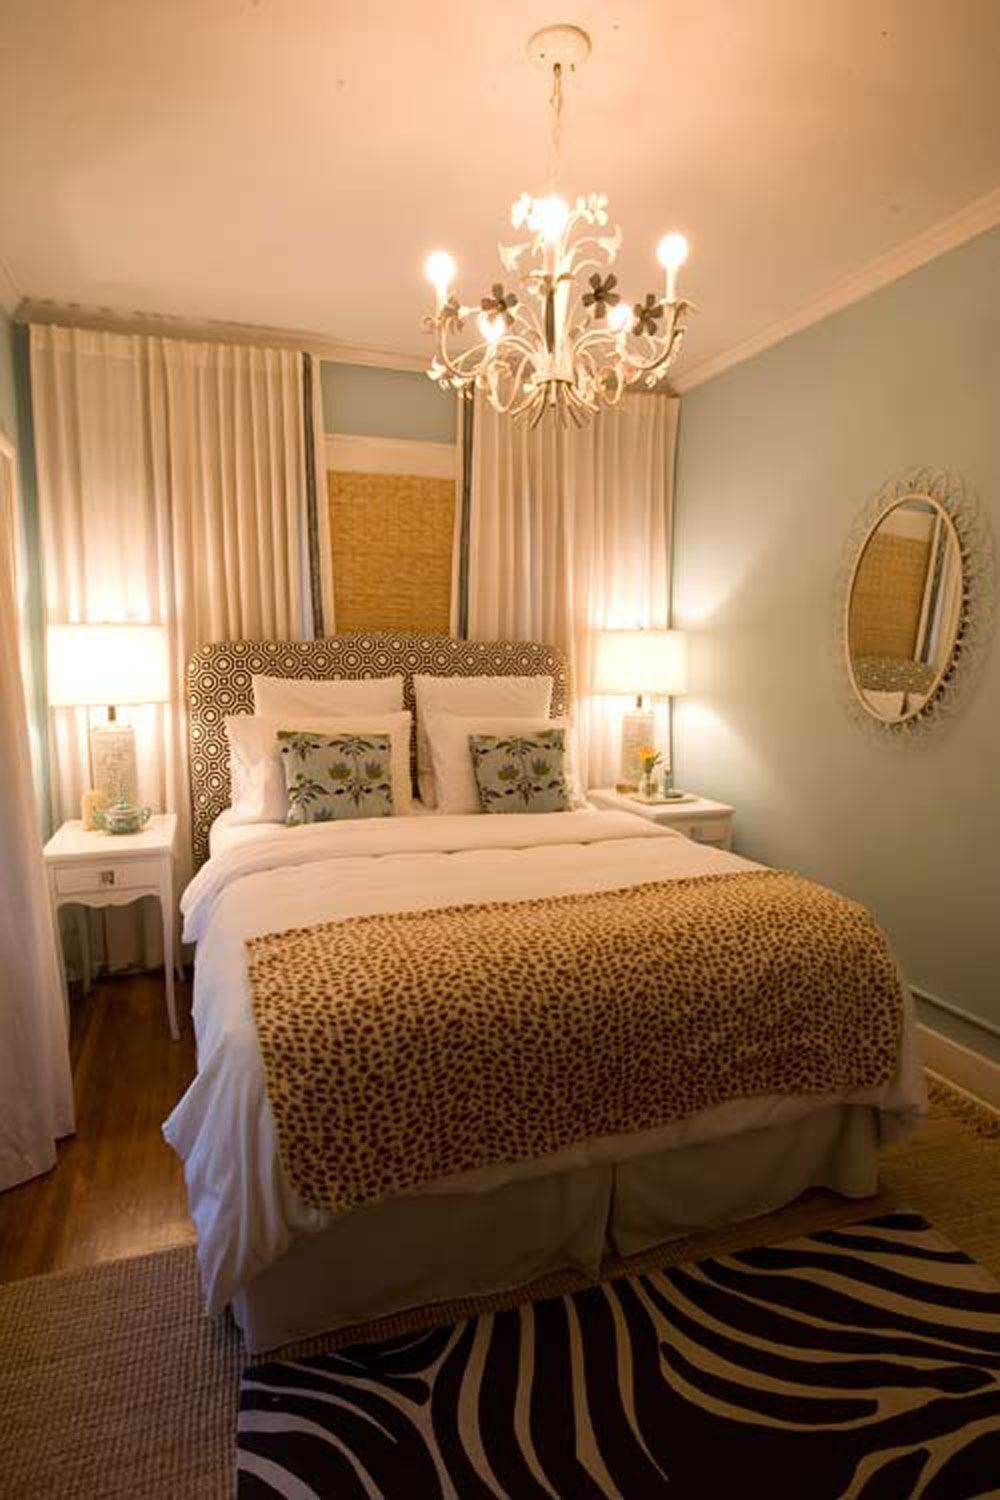 Design Tips For Decorating A Small Bedroom On A Budget  Budgeting Magnificent 12X10 Bedroom Design Decorating Inspiration